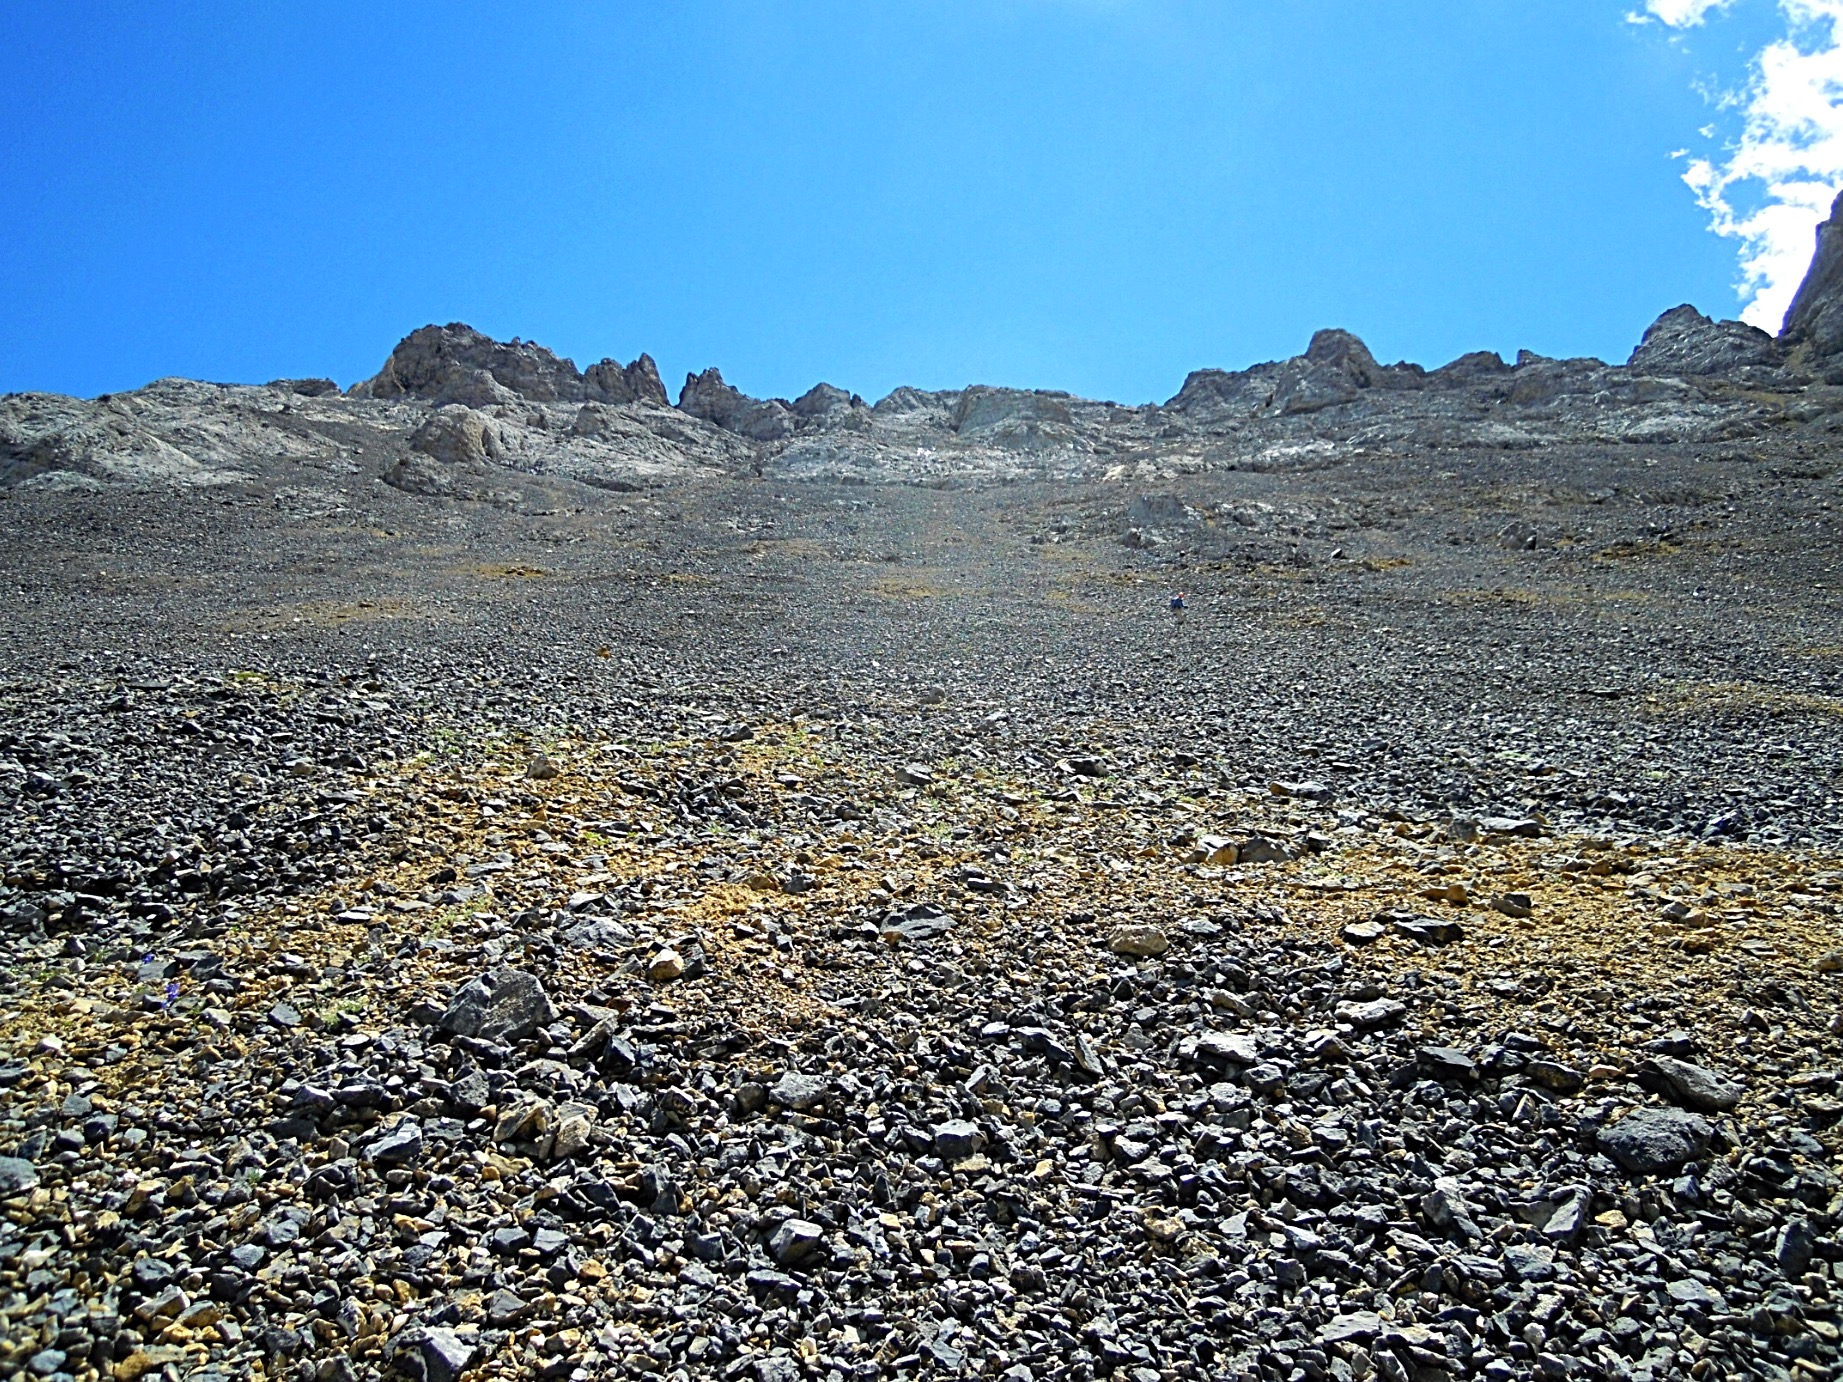 Partway up the scree slope. The summit is on the left. Judi Steciak Photo